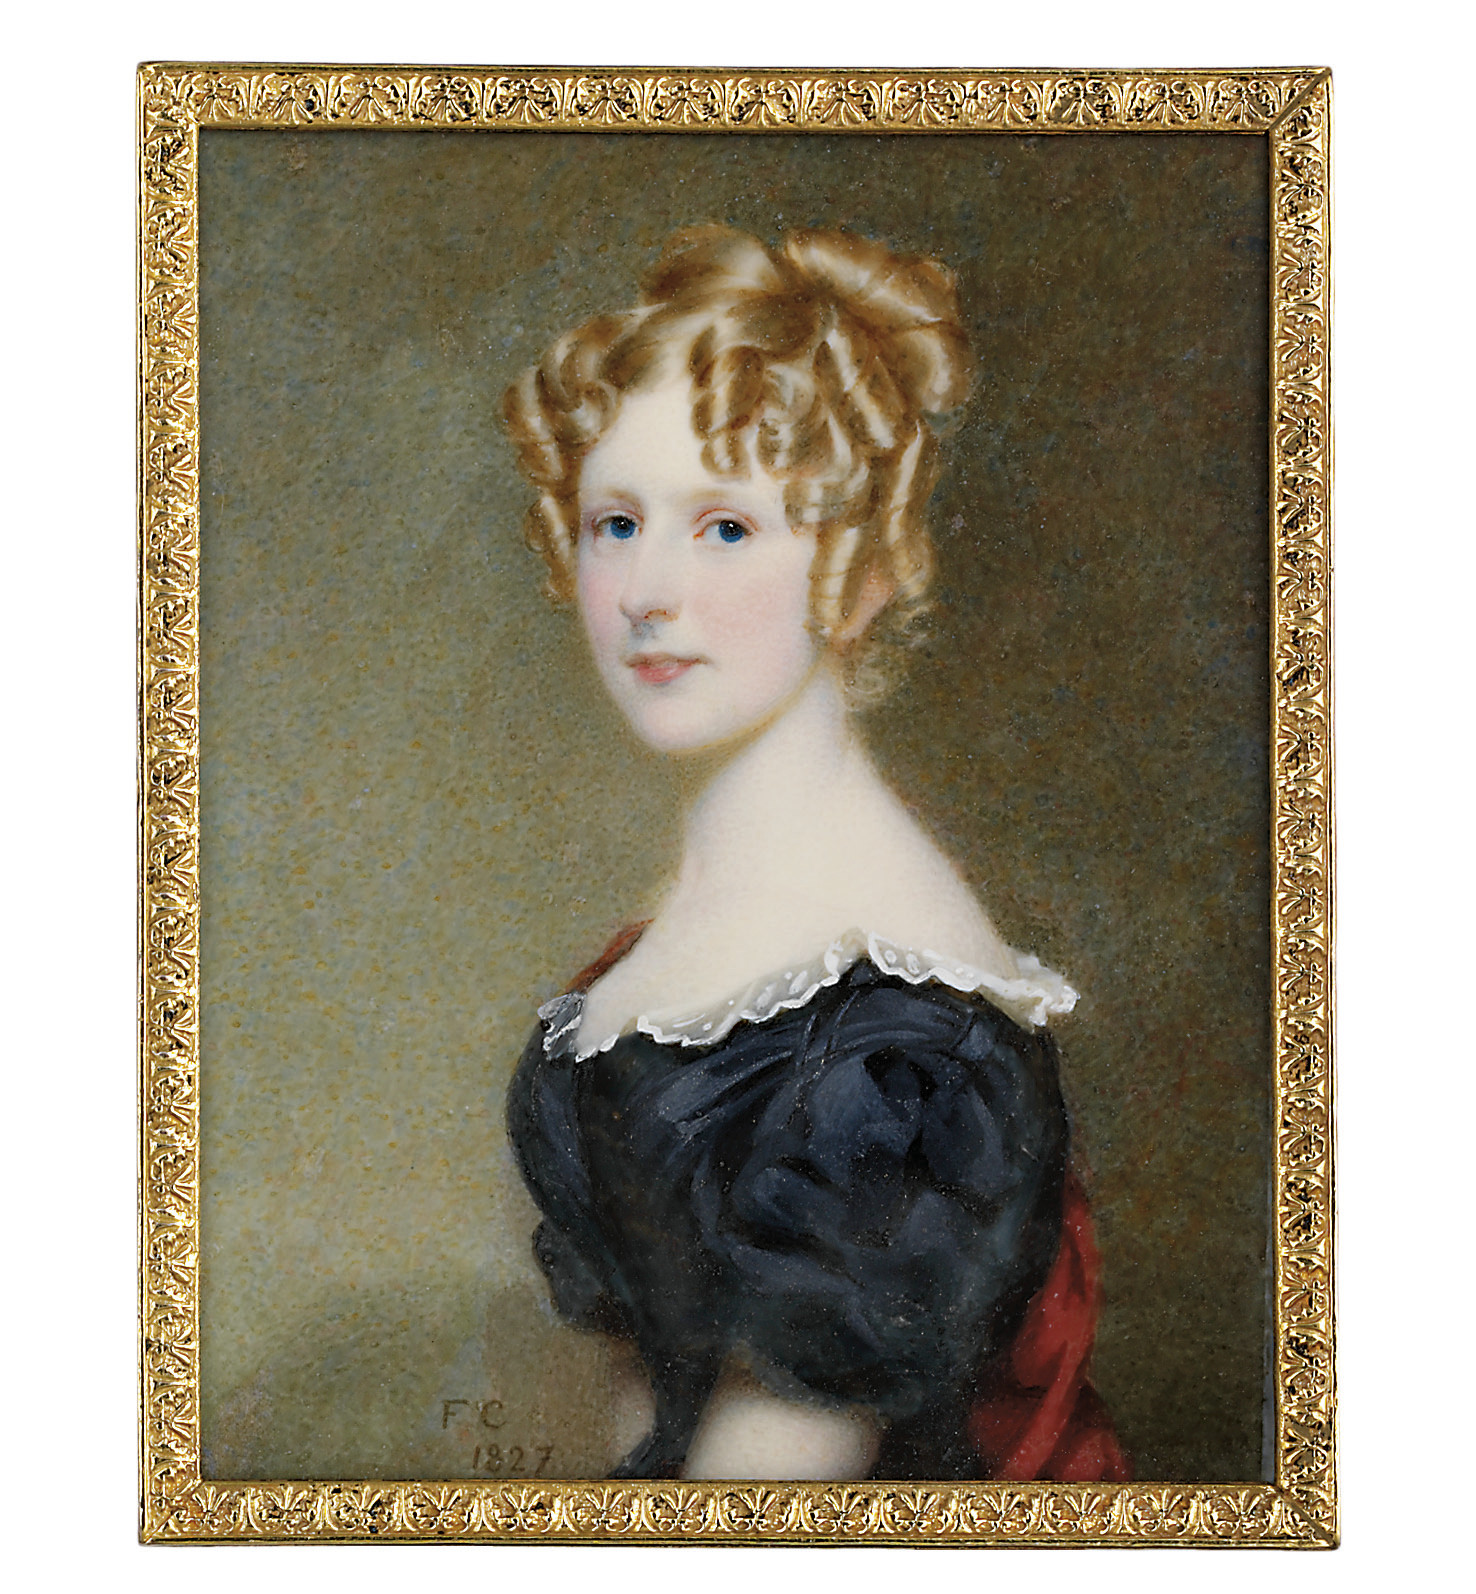 Charlotte Esther Lister (1808-1827) of Armitage Park, in black dress with white lace collar, seated on red stole, upswept curling fair hair